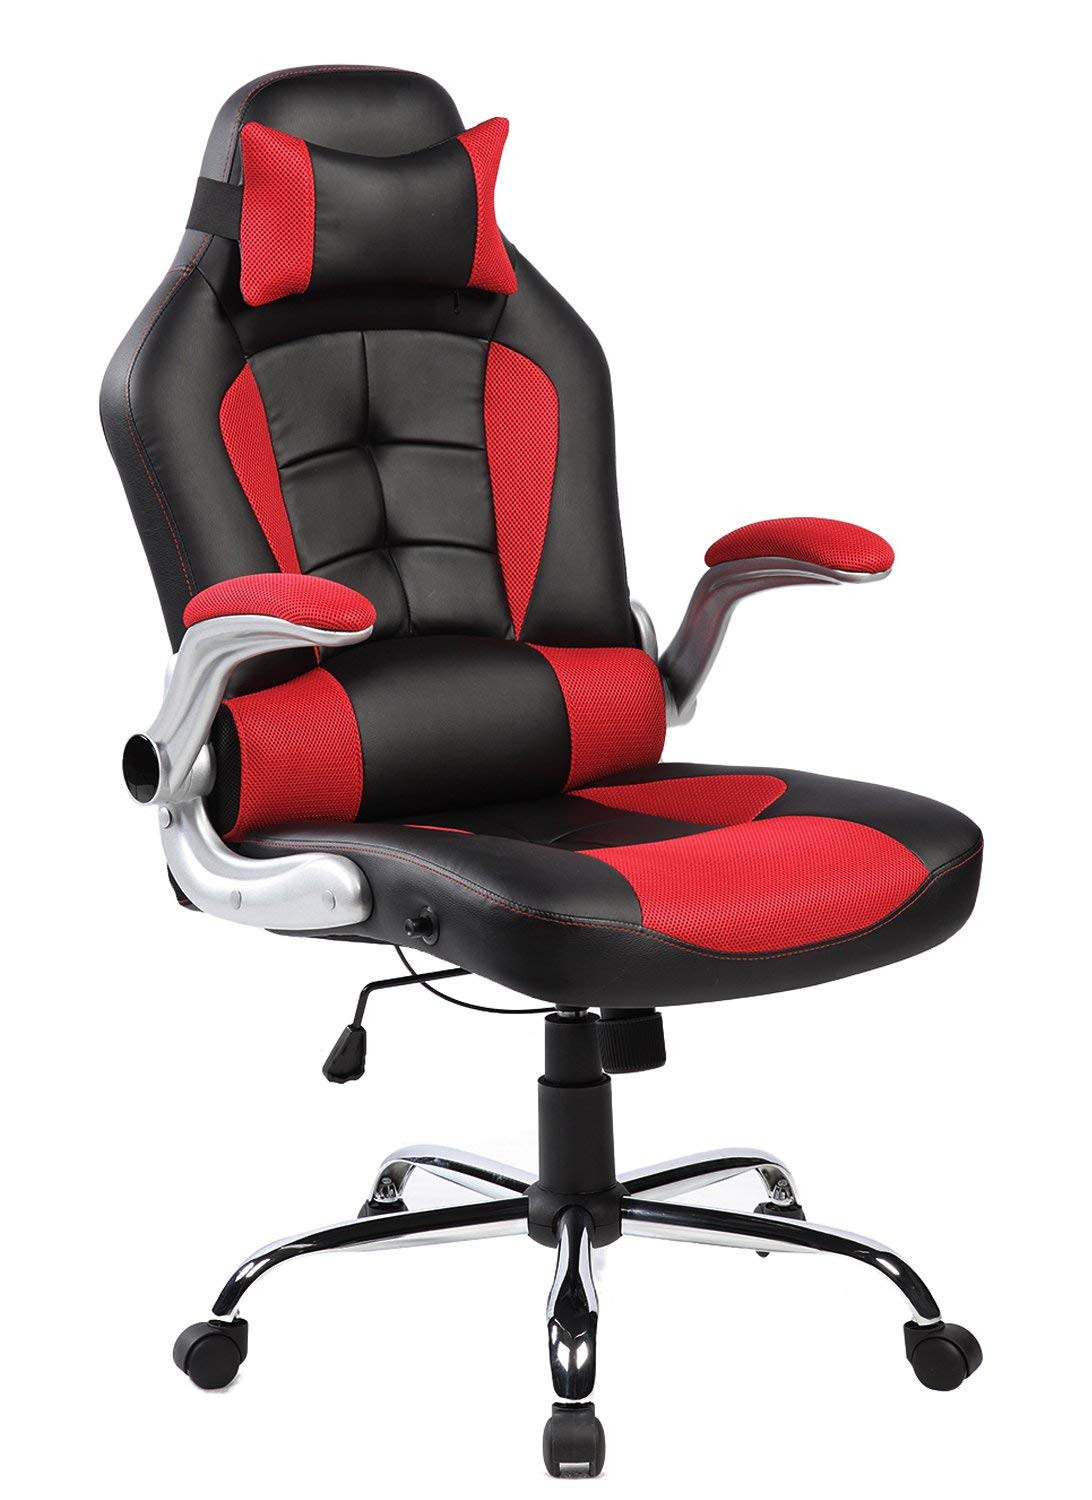 Best ideas about Office Chair Lumbar Support . Save or Pin Best fice Chair for Lumbar Support Reviews and parison Now.